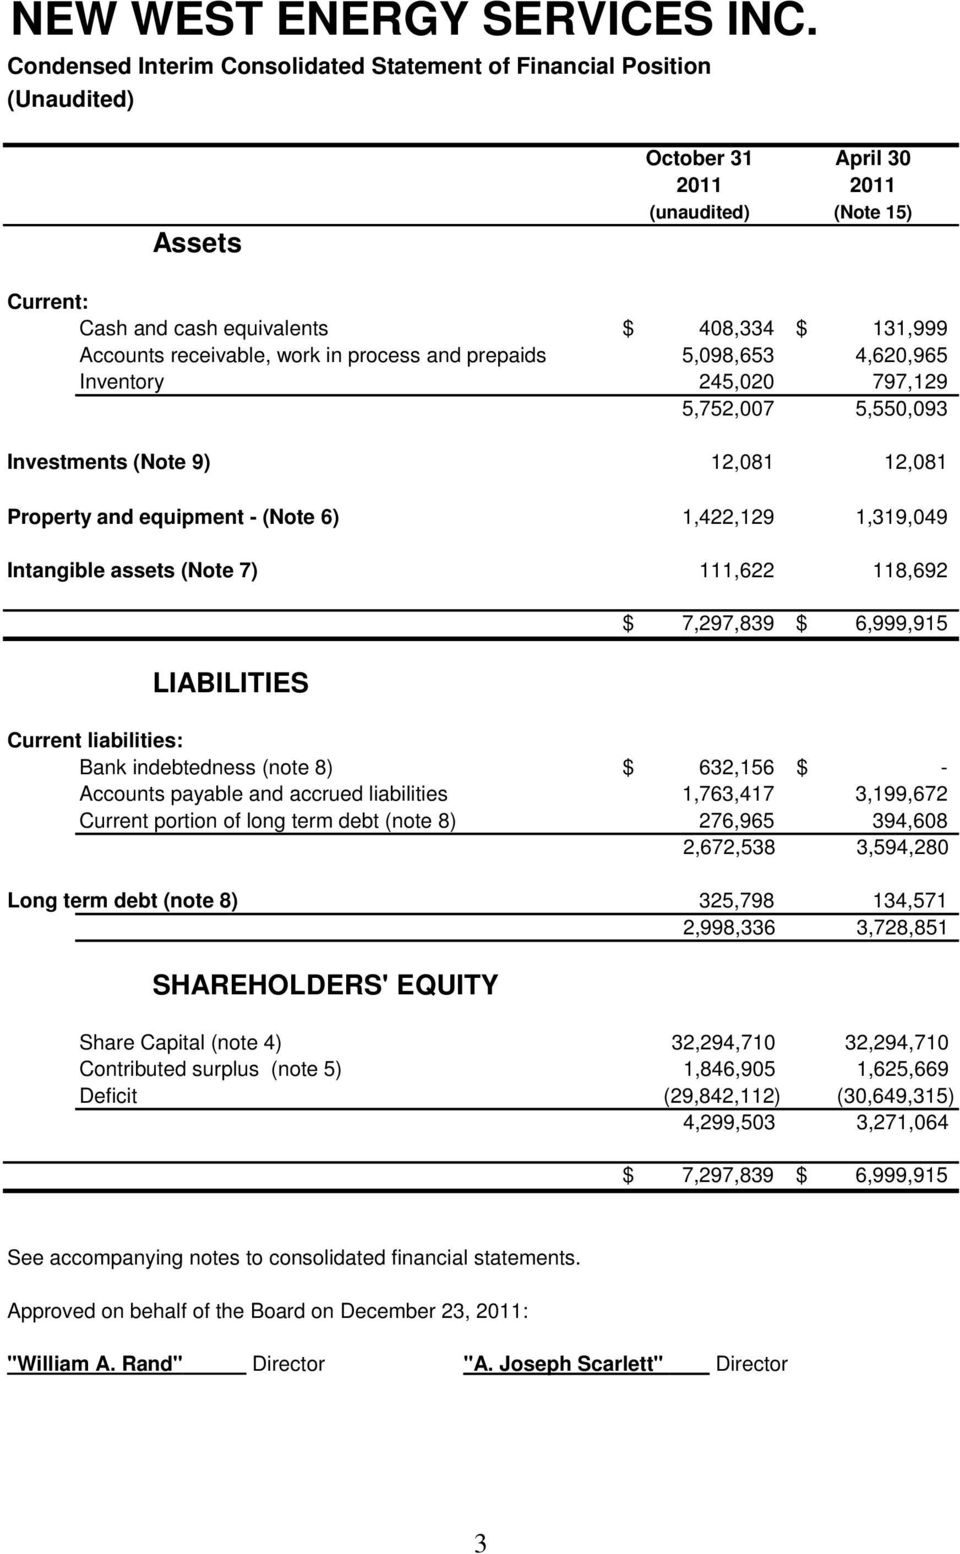 Intangible assets (Note 7) 111,622 118,692 LIABILITIES $ 7,297,839 $ 6,999,915 Current liabilities: Bank indebtedness (note 8) $ 632,156 $ - Accounts payable and accrued liabilities 1,763,417